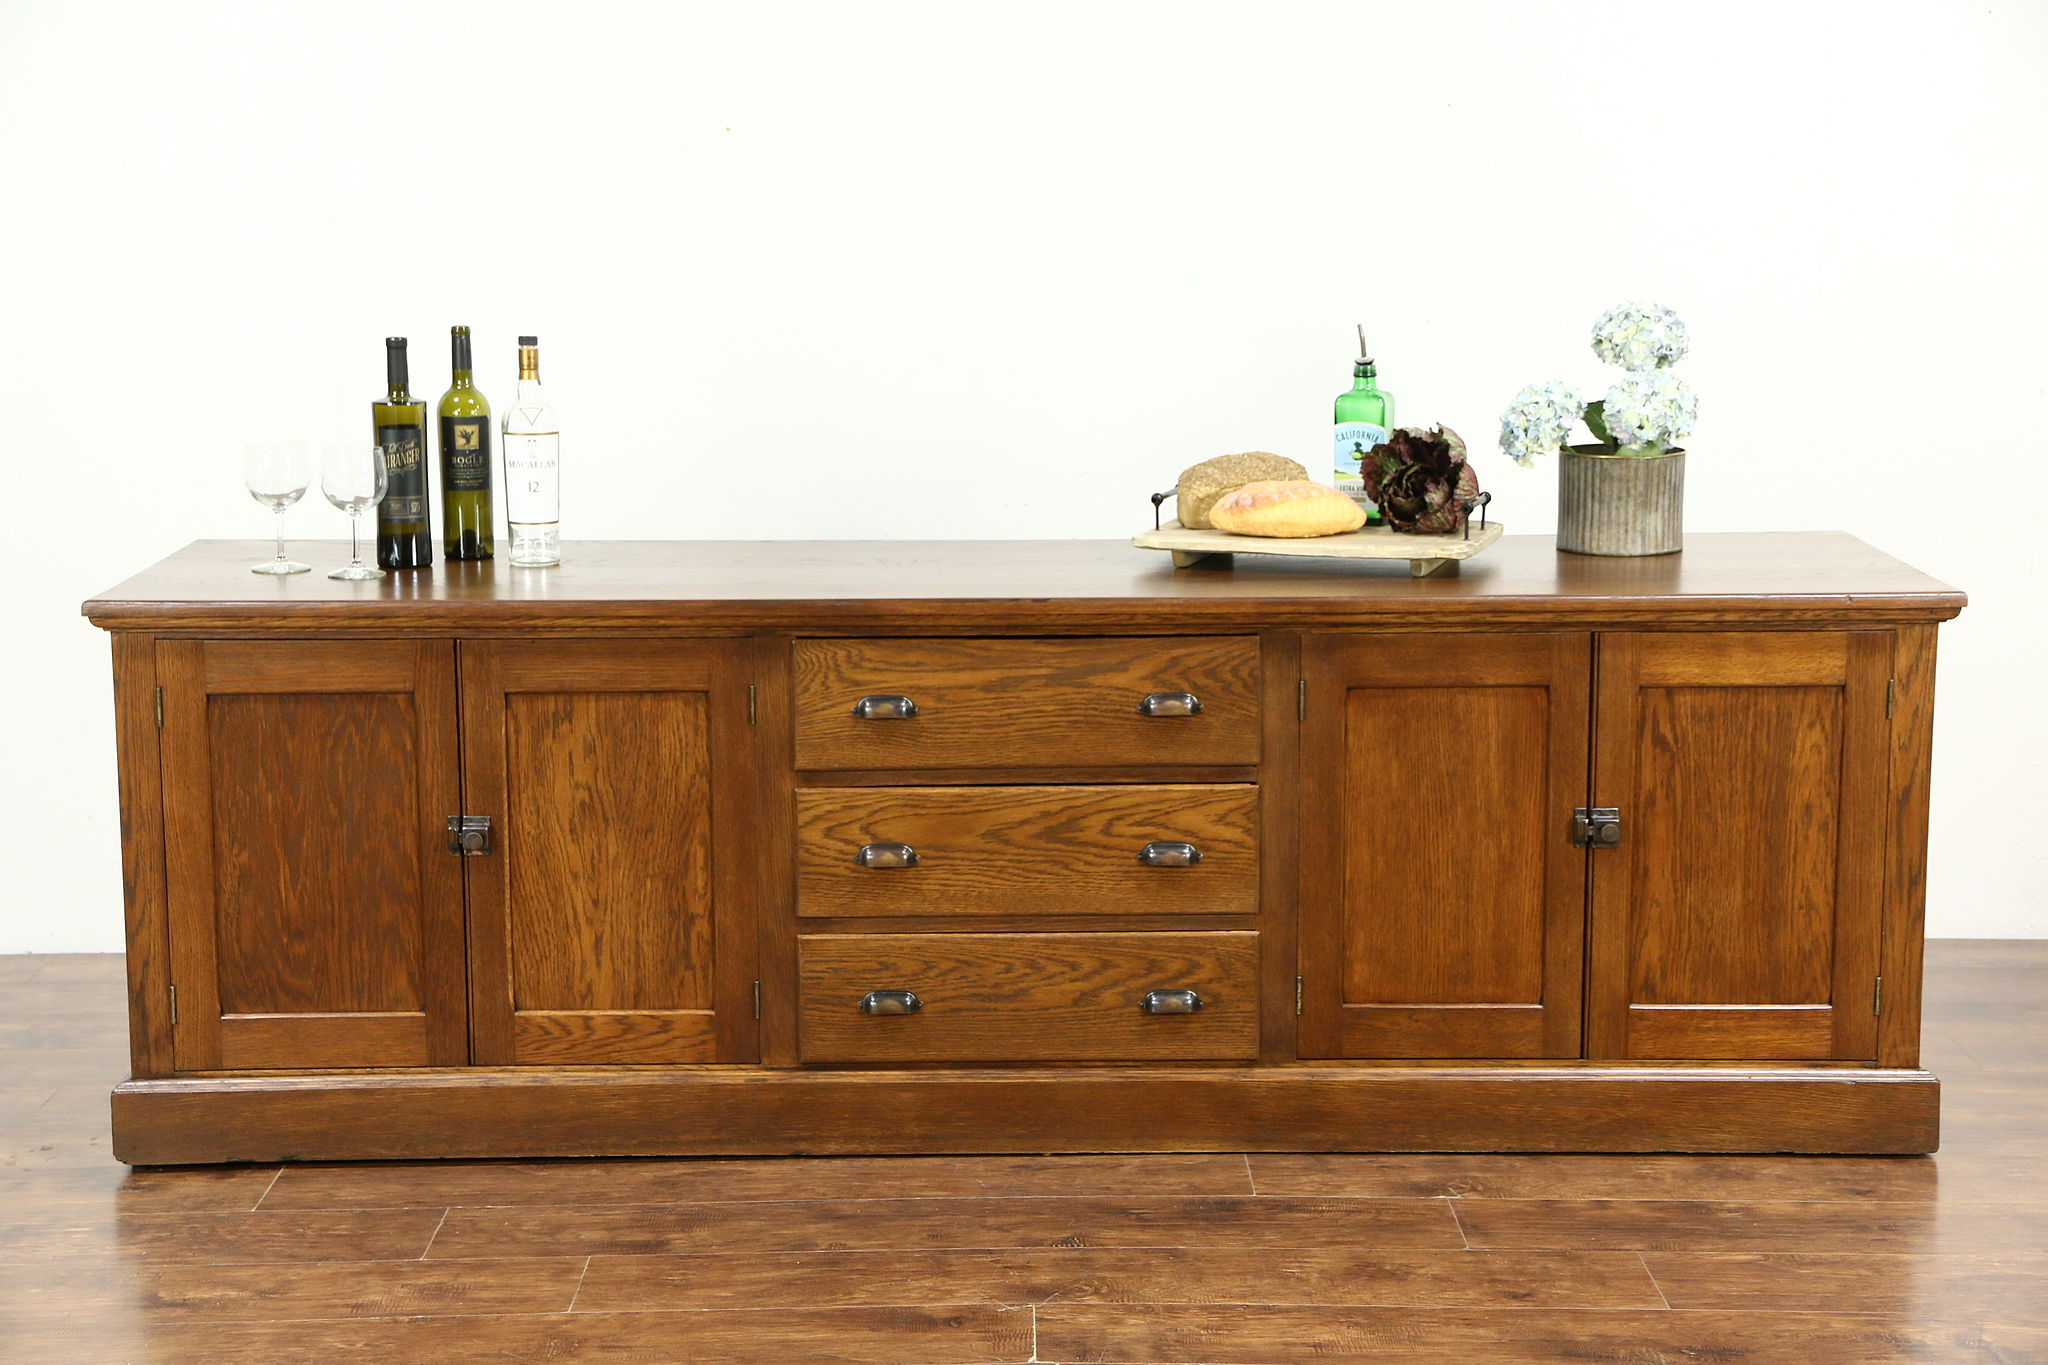 Oak 1900 Antique 8' Kitchen Counter, Sideboard or TV Console ...